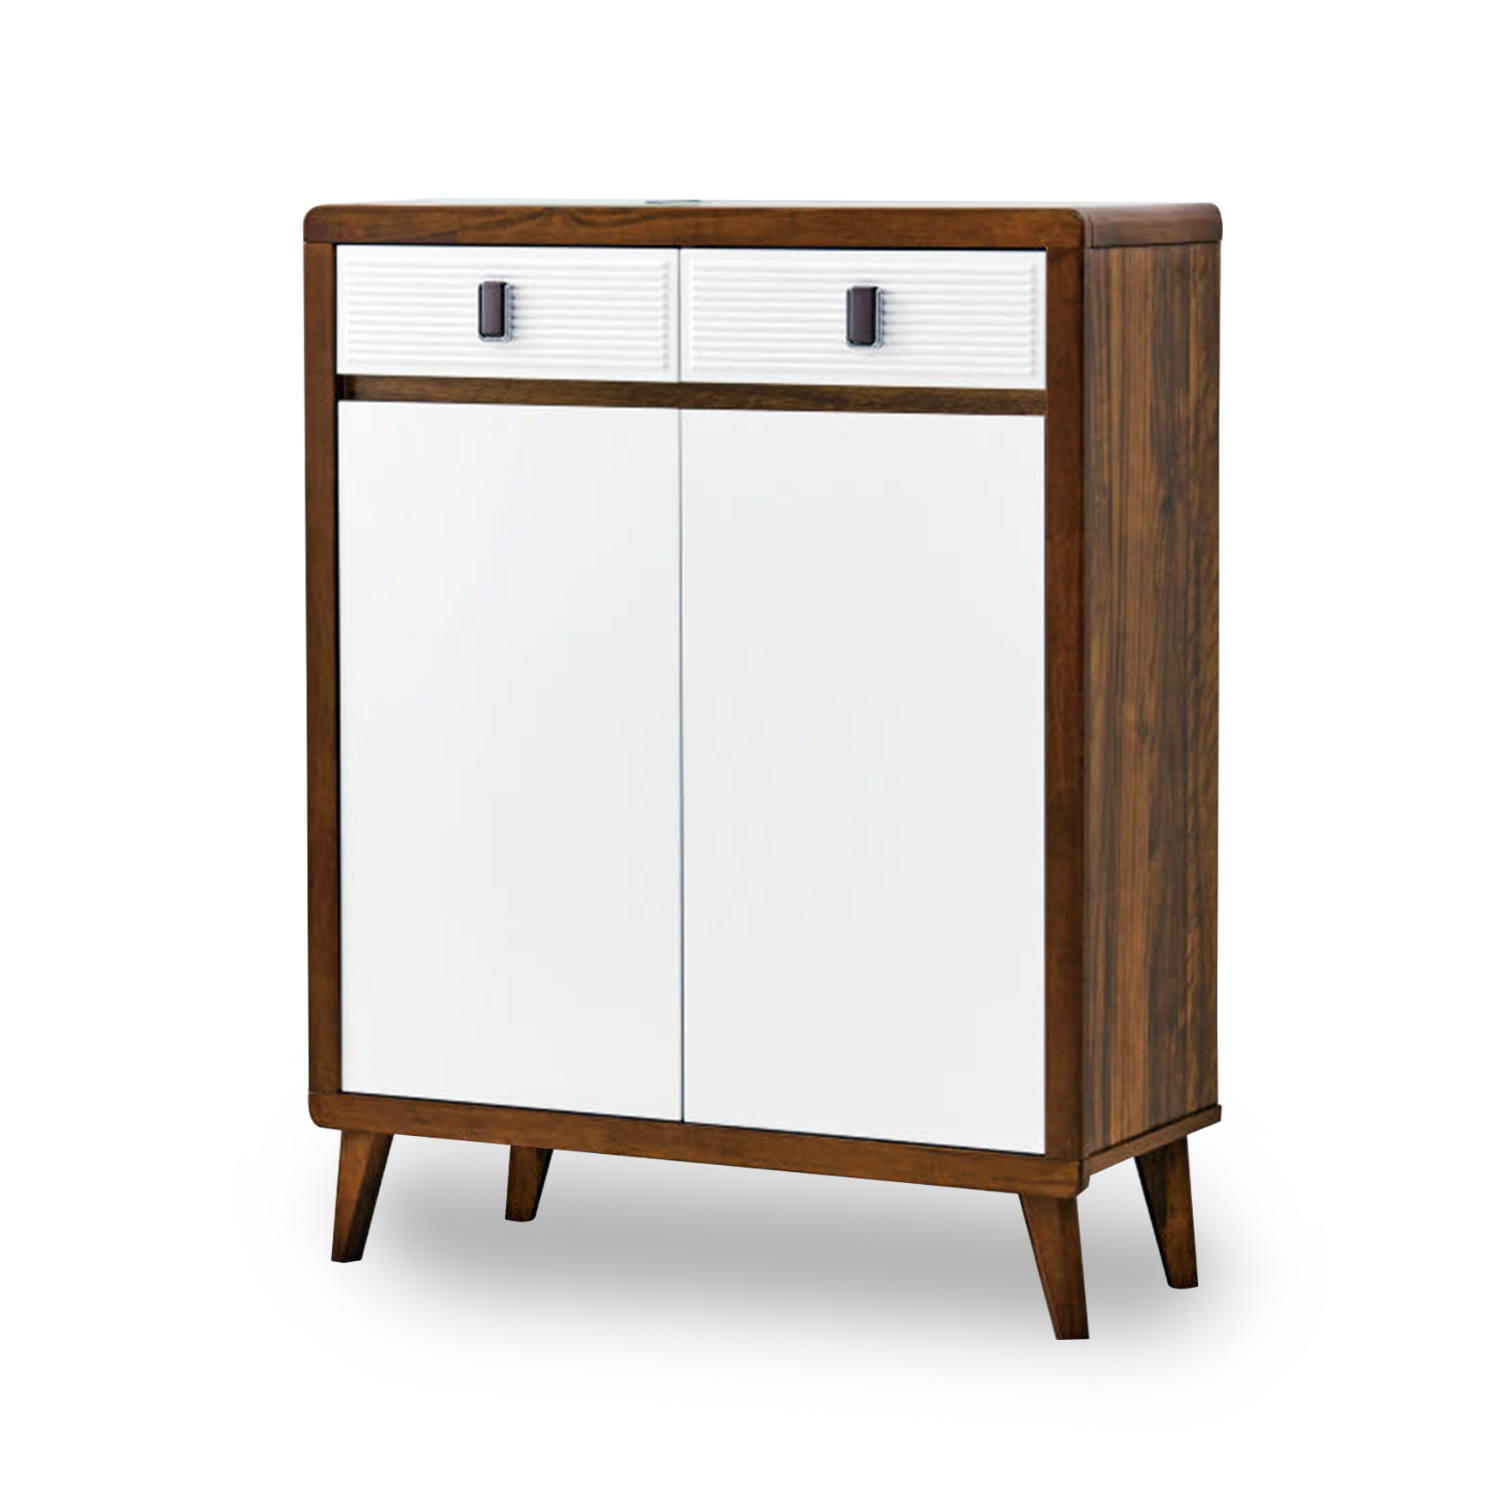 Shoe Cabinet 4601 with MDF Board